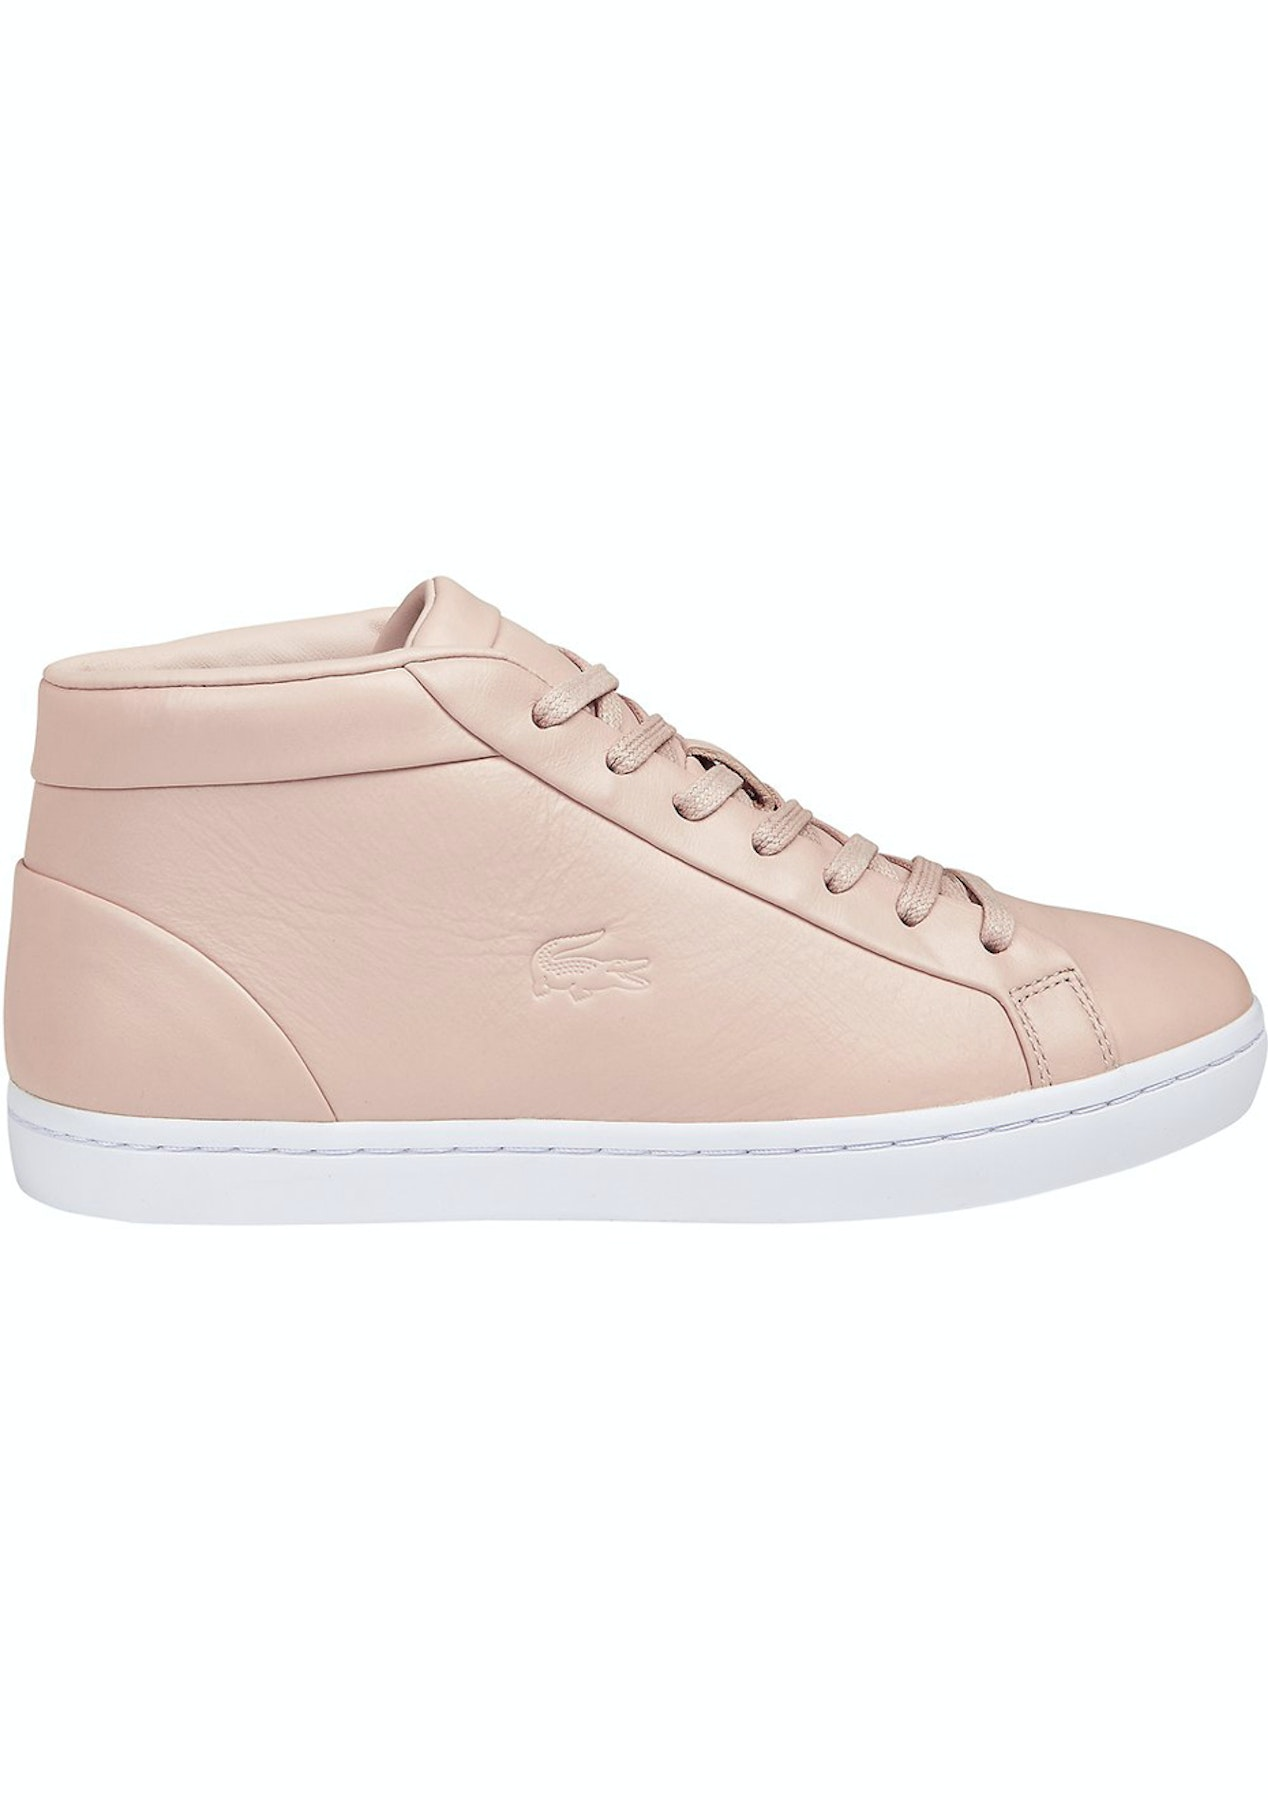 a06776fbd Womens Lacoste - Straightset Chukka 316 1 - Light Pink - Lacoste Garage  Sale - Onceit